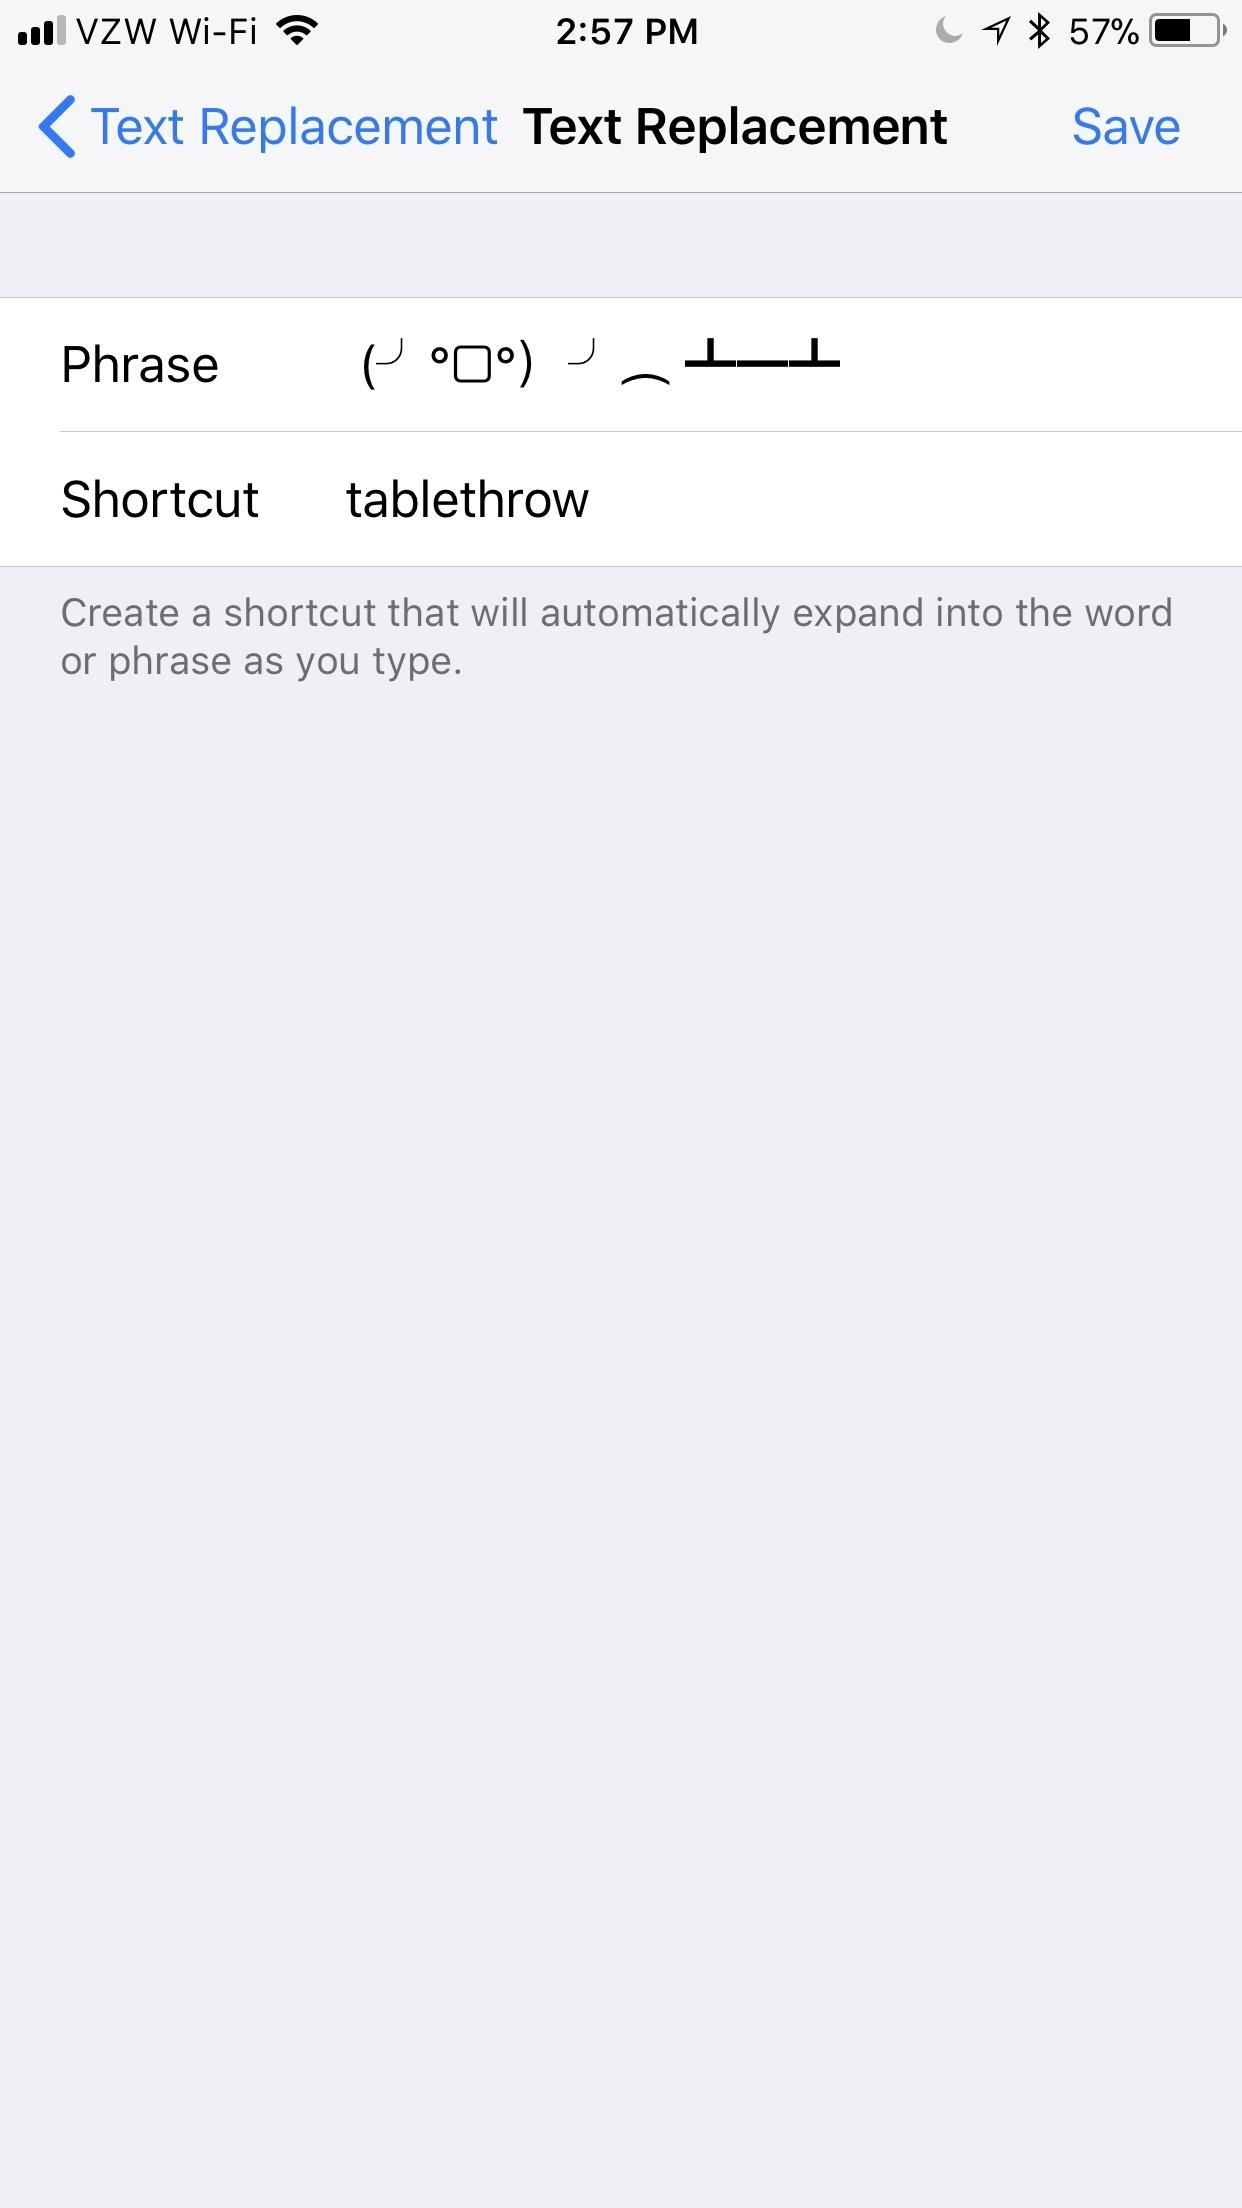 How to Use Keyboard Shortcuts to Type Out Emoticons Faster on Your iPhone